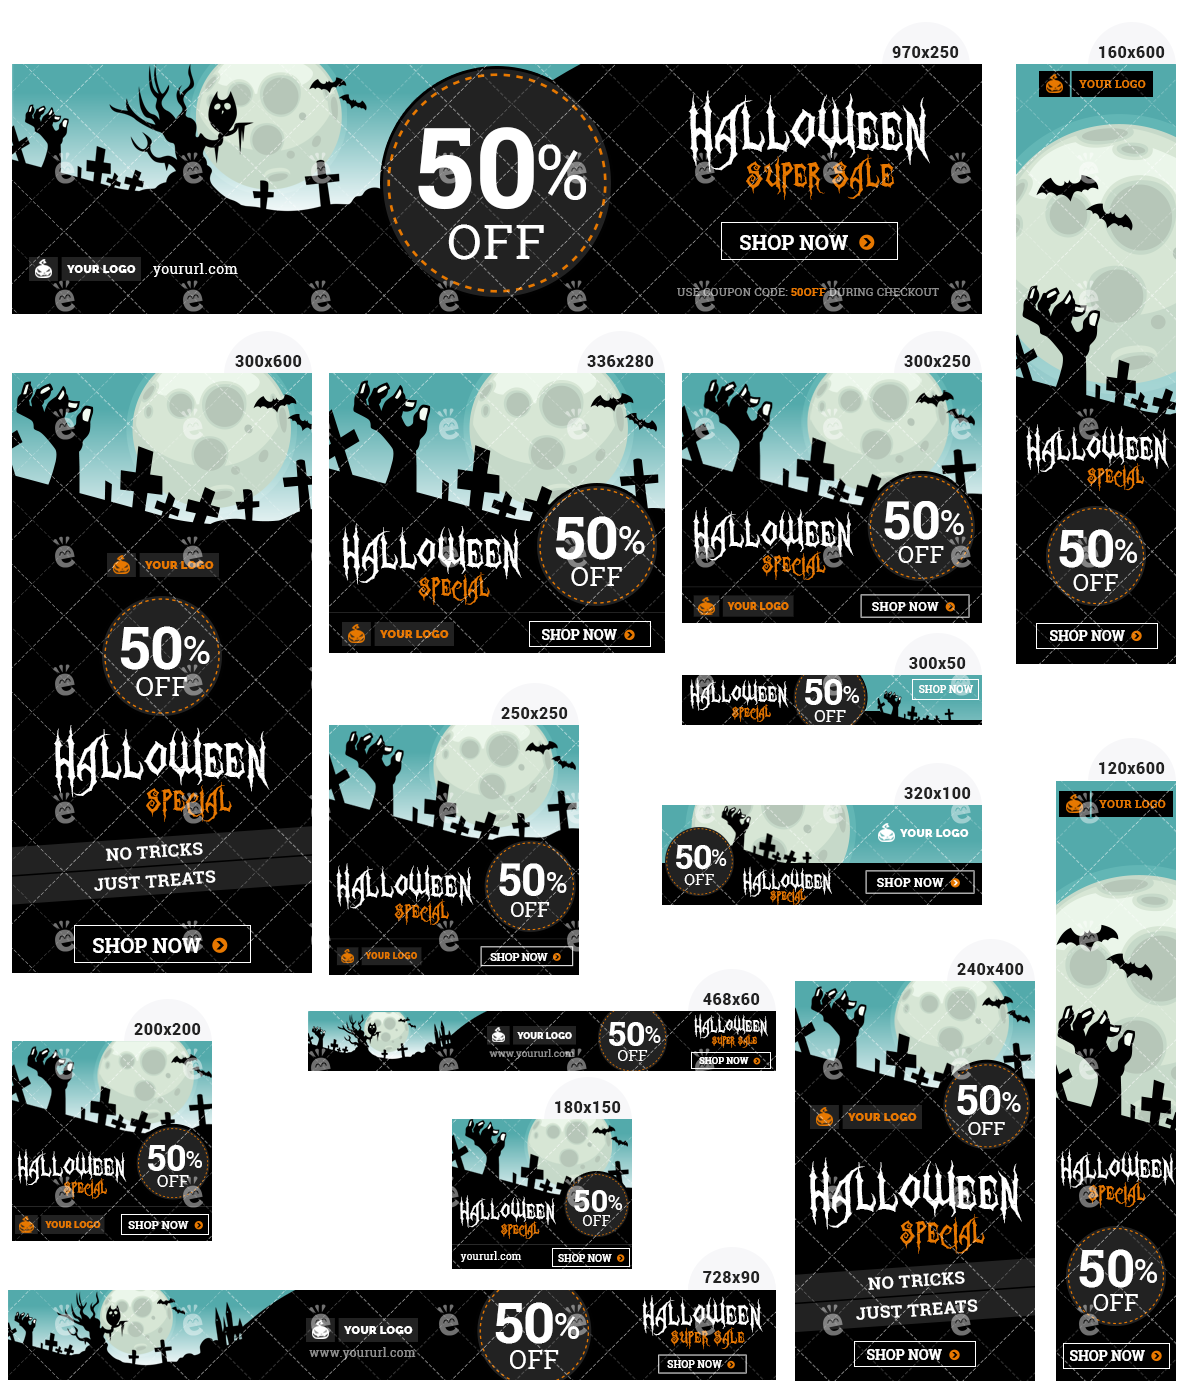 Halloween Banner Set 2 - Zombie Hand Creepy Night